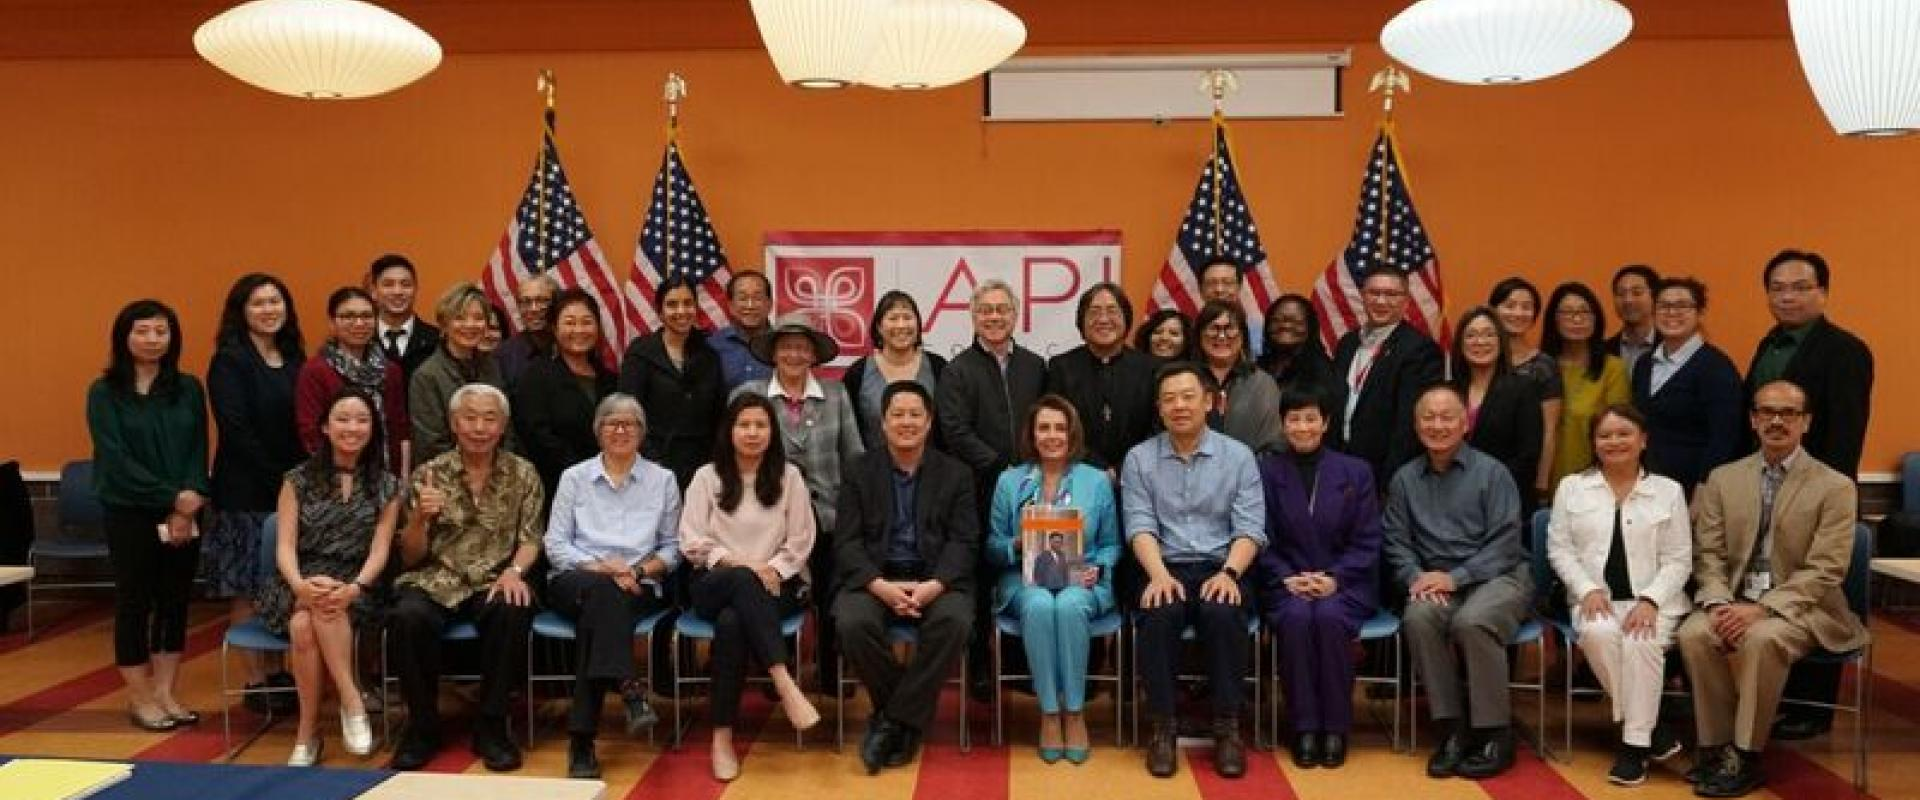 Congresswoman Pelosi holds a roundtable discussion with local leaders of the Asian-American Pacific Islander (AAPI) Community to discuss grant funding for education, quality health care, creating good-paying jobs, affordable housing and comprehensive immi